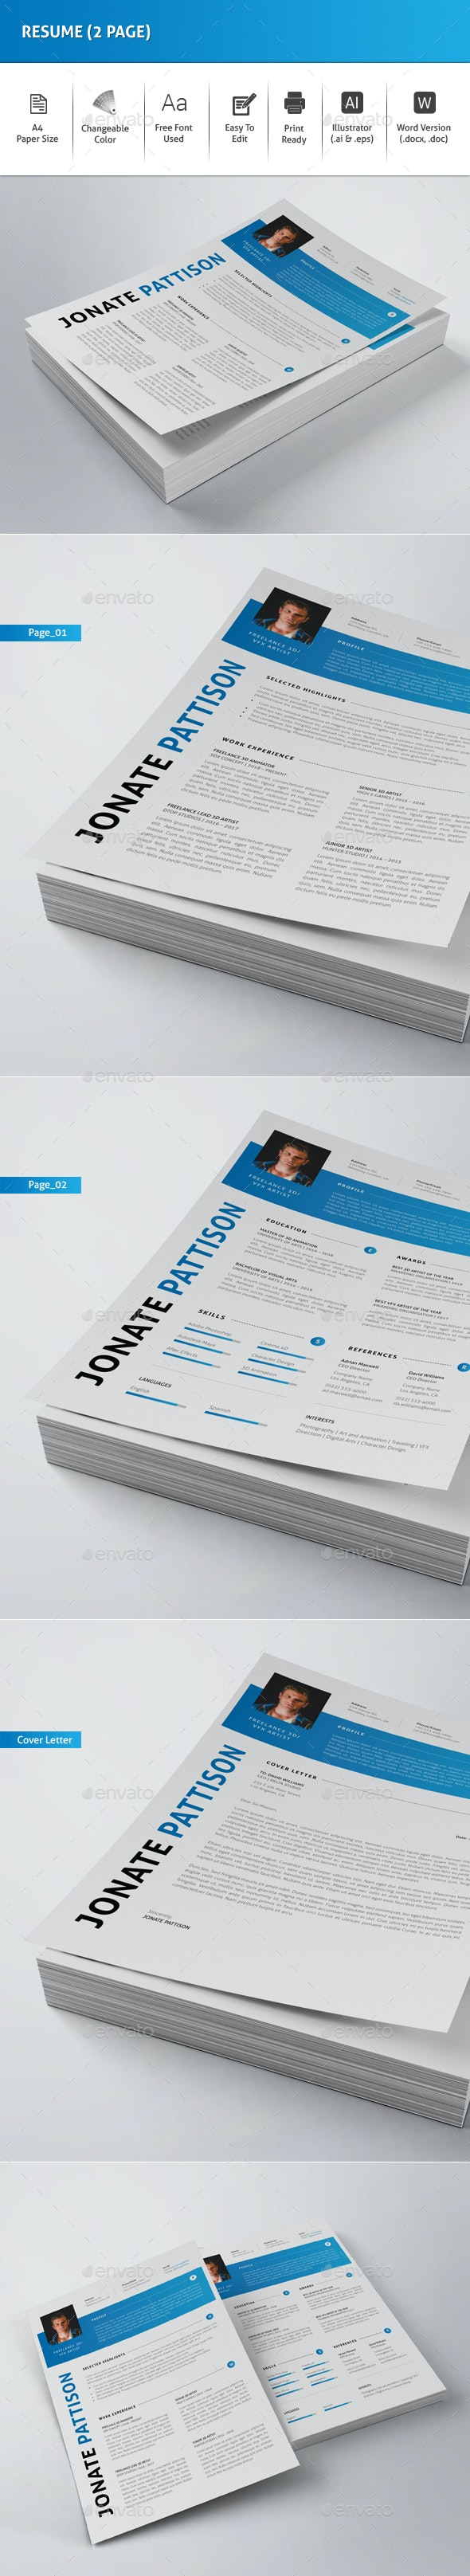 Resume (2 Page) - Resumes Stationery